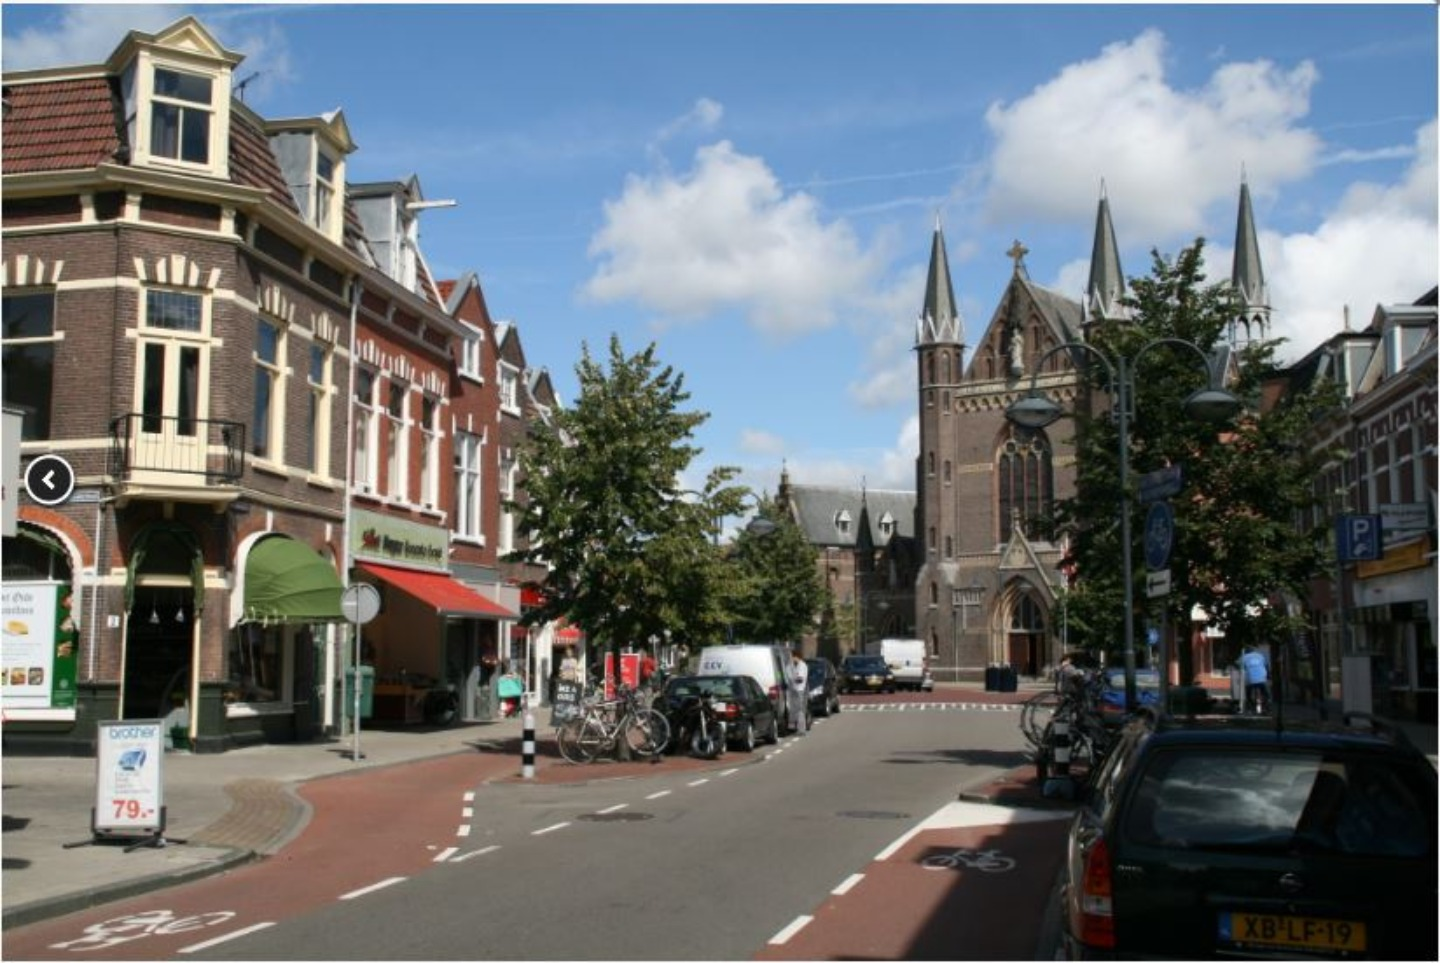 A clock tower in the middle of a city street at B&B Apartment,Little Amsterdam.